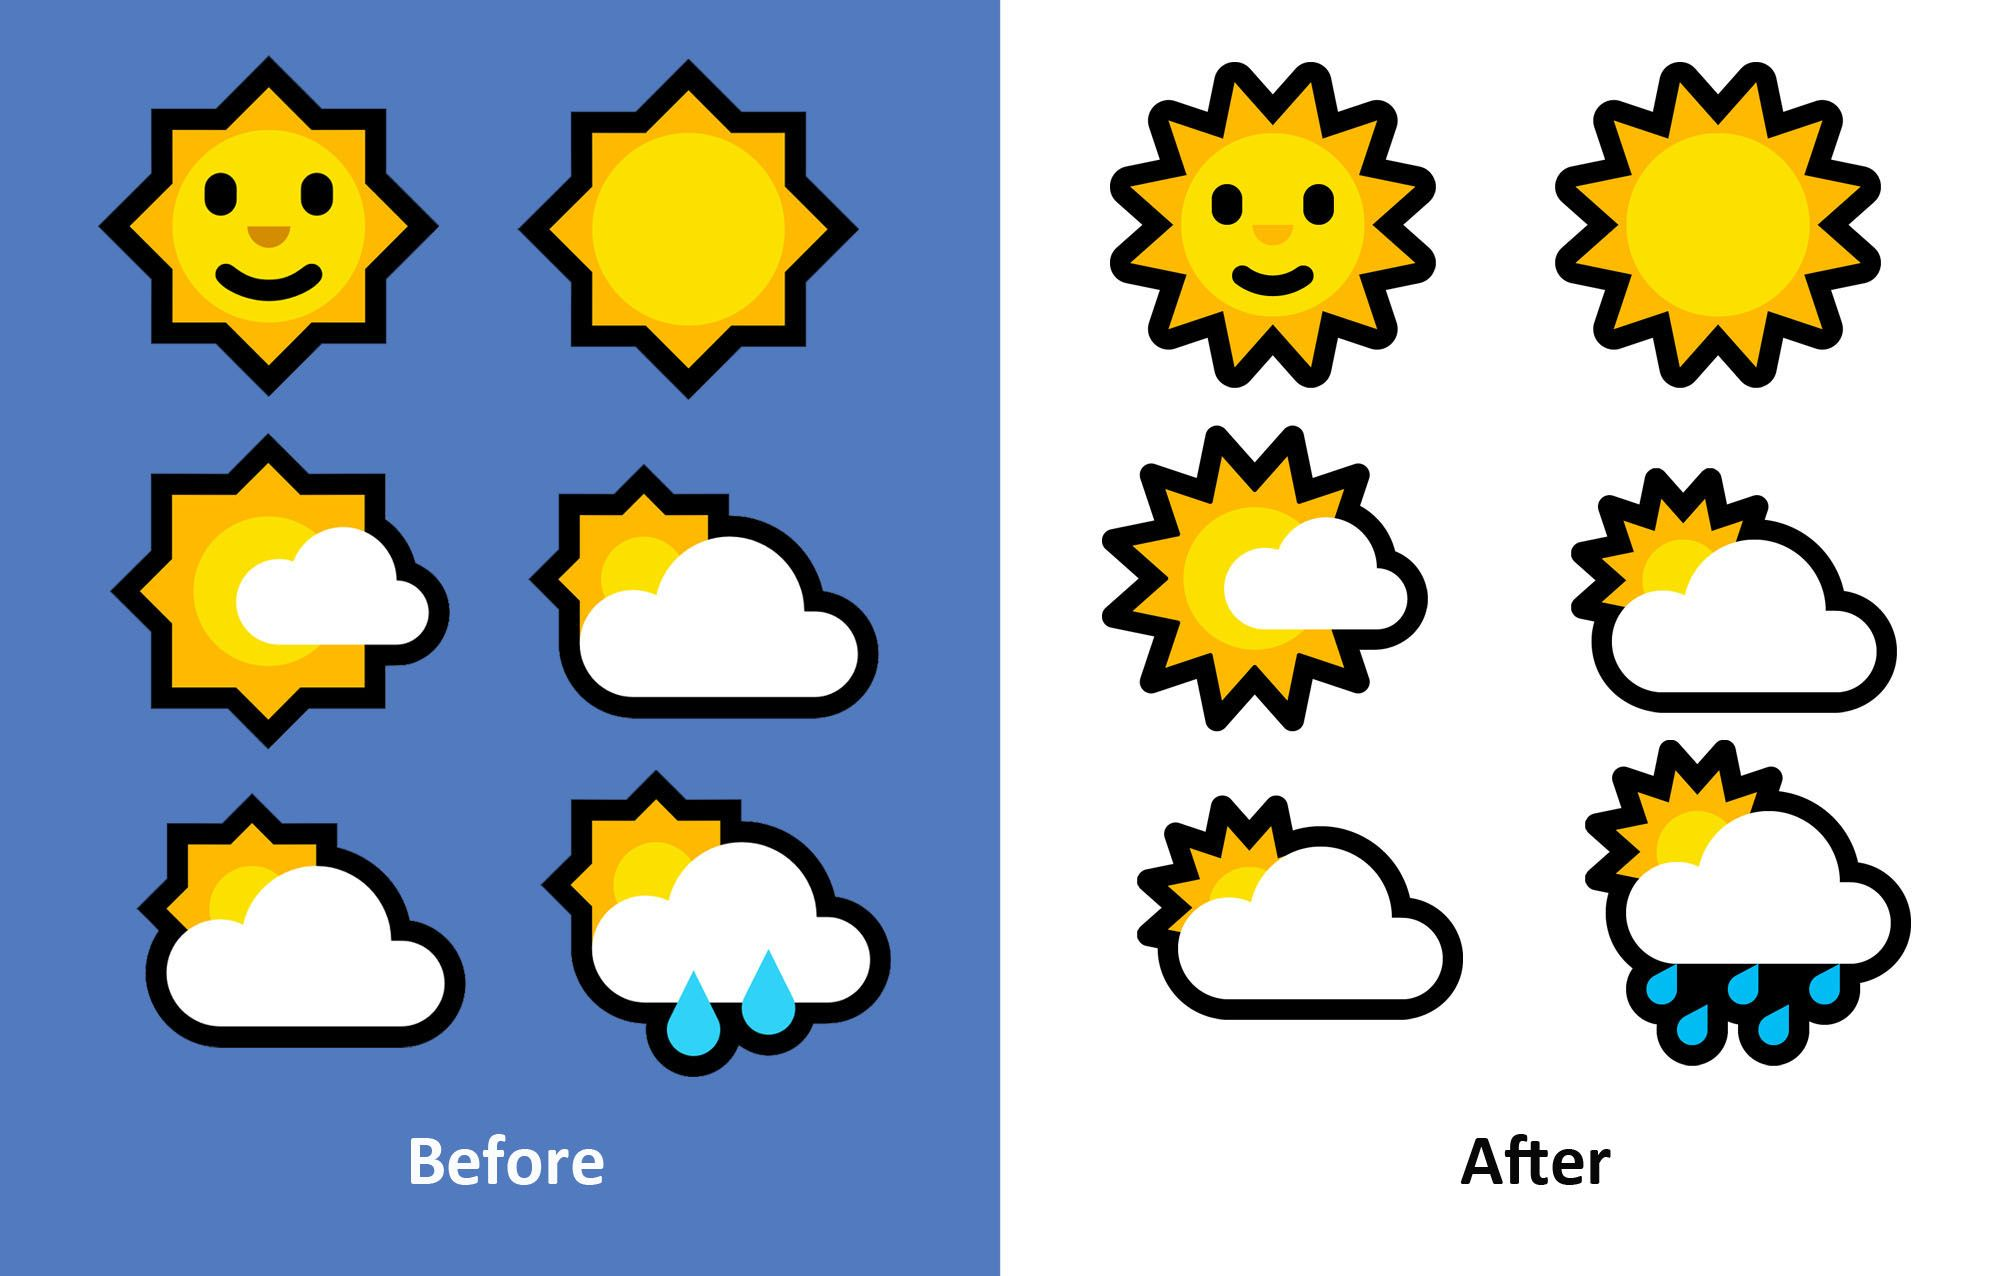 Emojipedia-Windows-Fall-2018-Sun-Design-Update-Comparisons